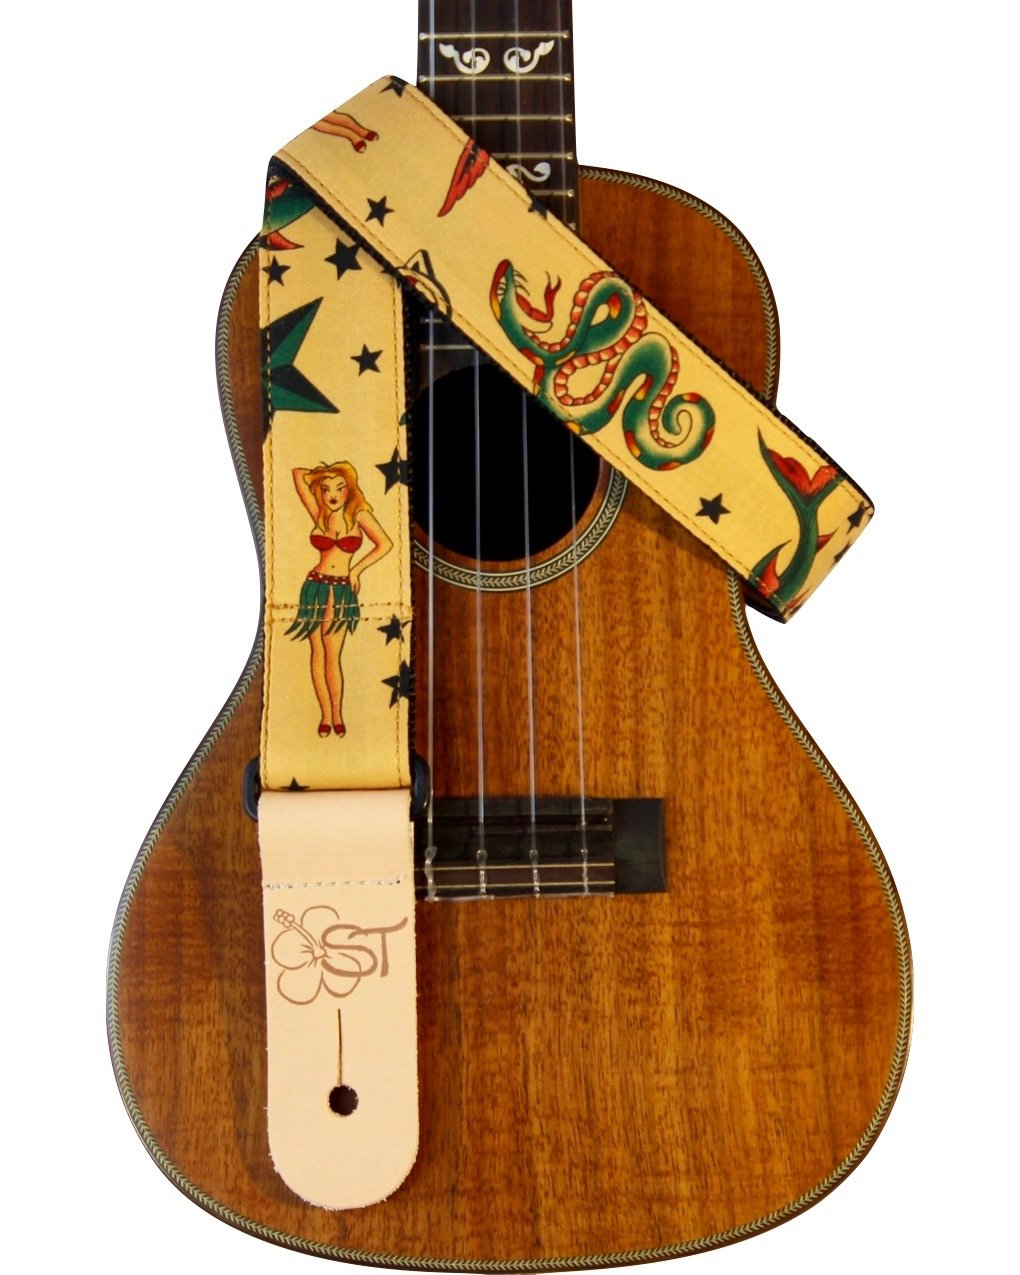 Sherrin's Threads 1.5 Ukulele Strap - Tattoo